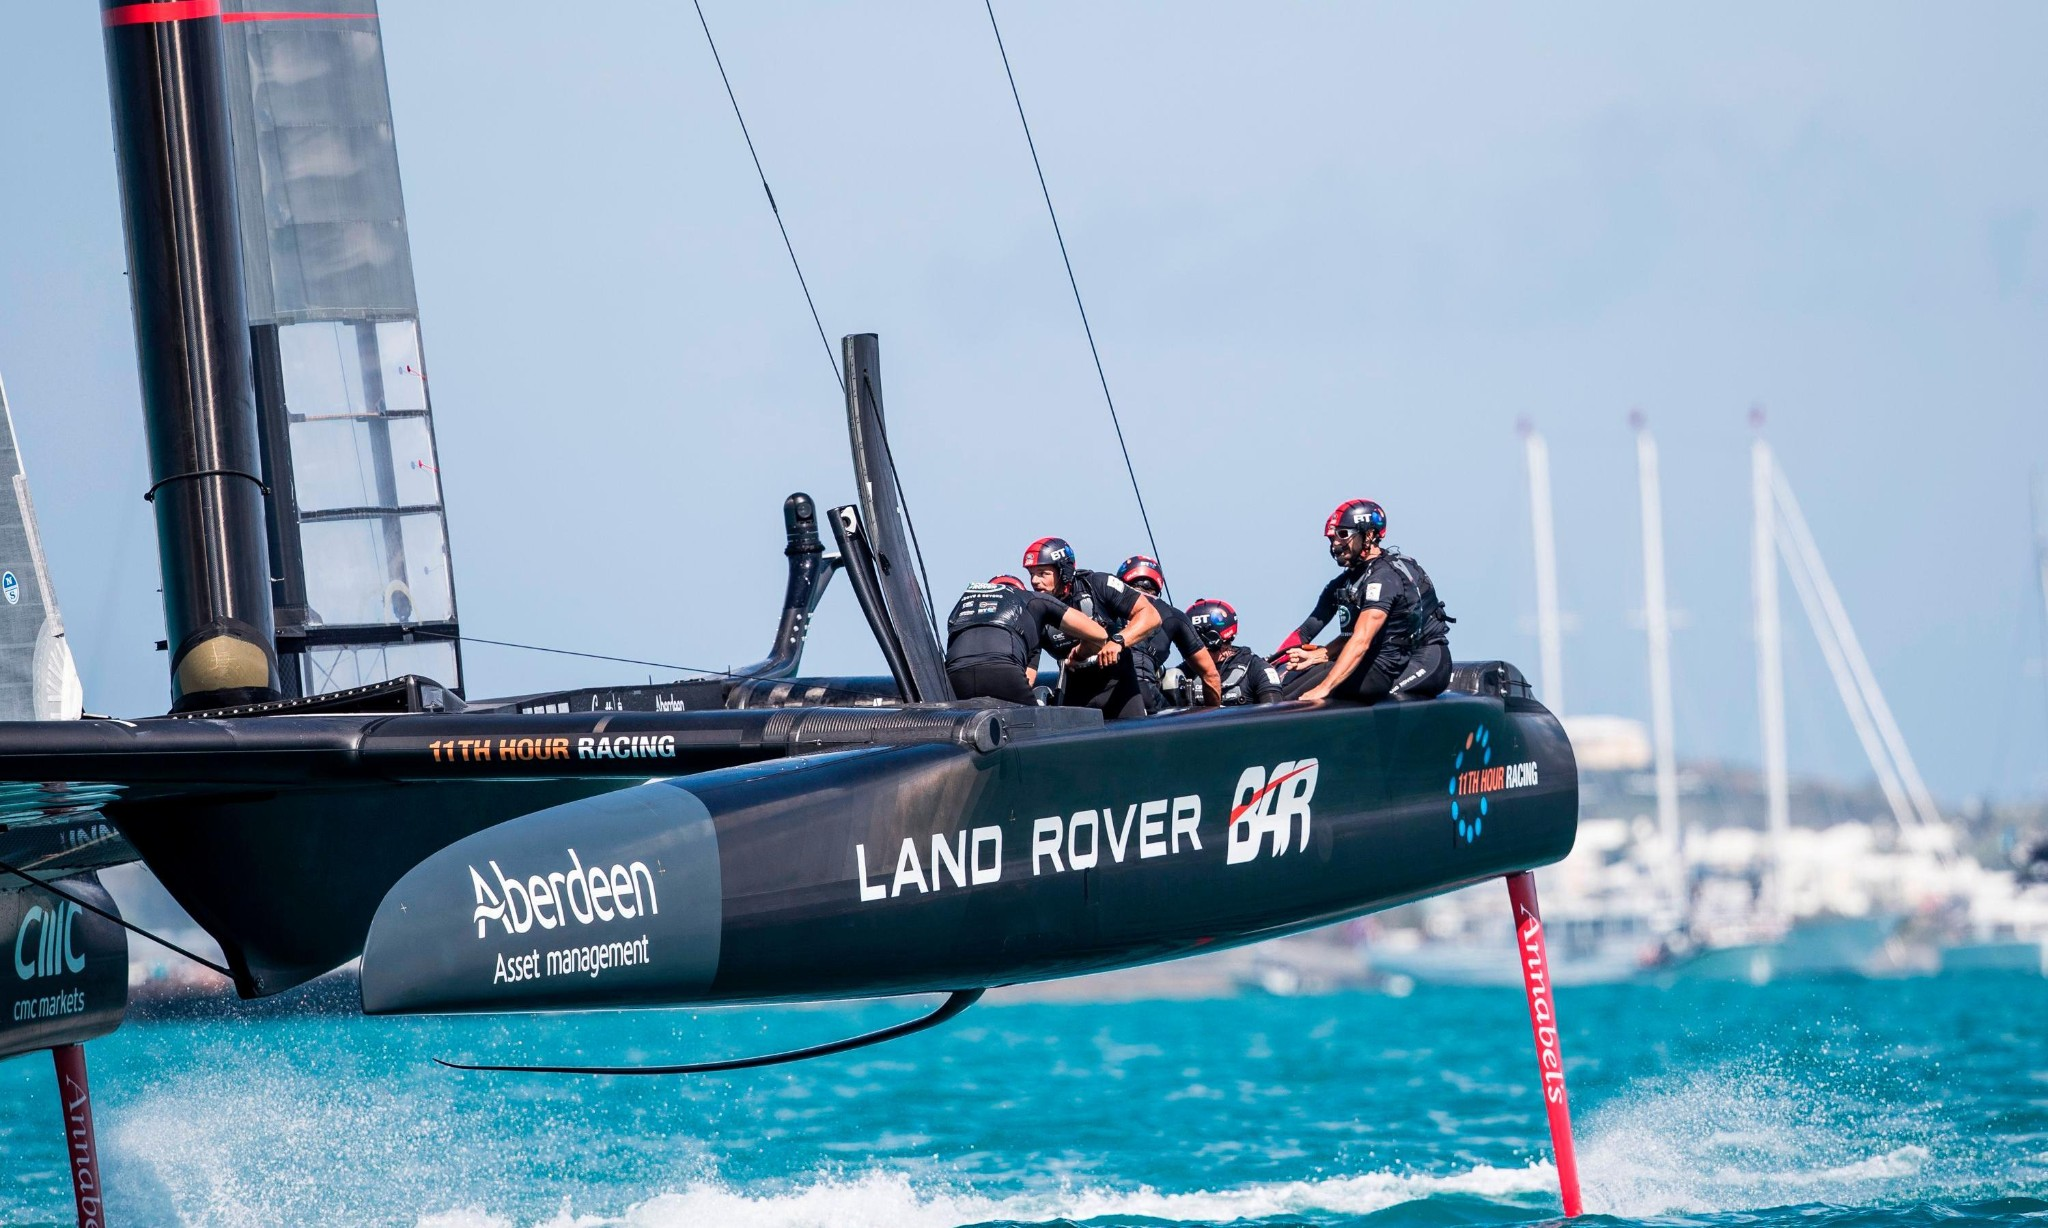 Ben Ainslie's Land Rover BAR team lose two America's Cup qualifiers